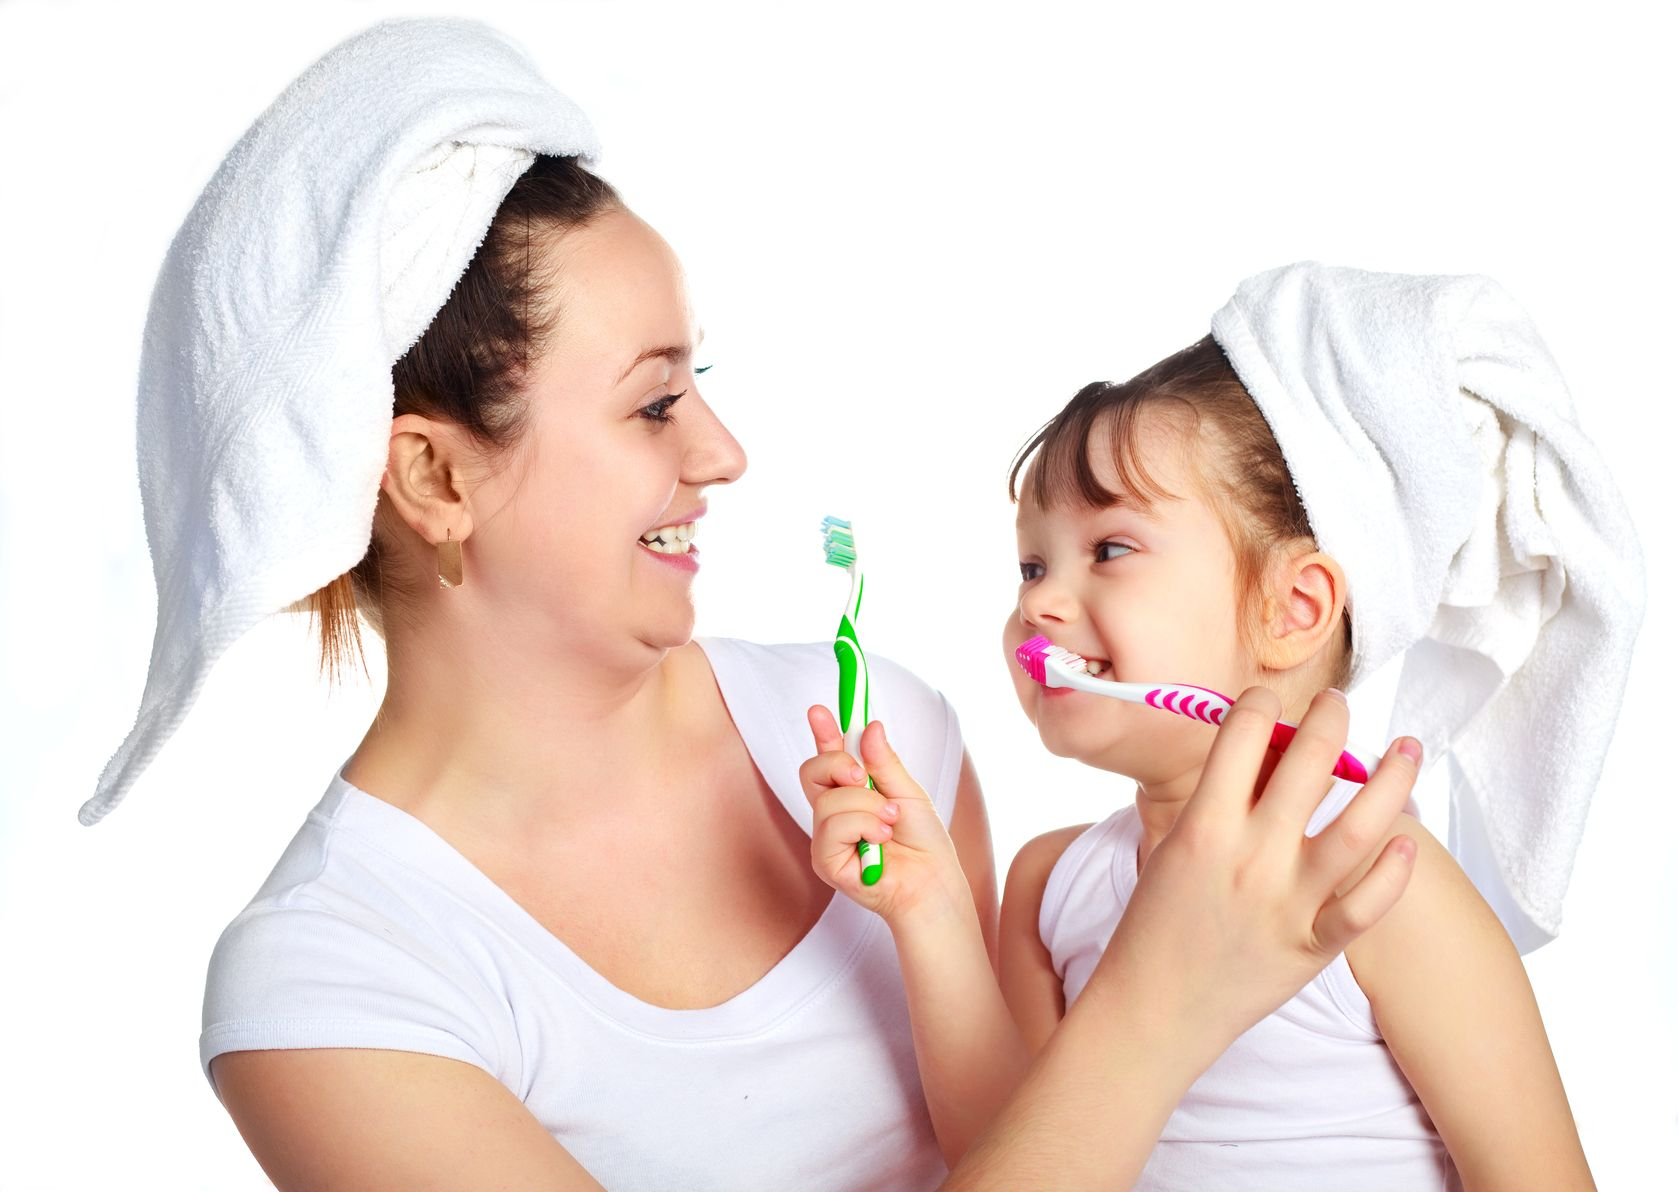 It's very important to carefully decide on selecting a dentist who meets your requirements and expectations. This is because any wrong decision can make your child's first dental experience painful, and it could be something that he could carry with him forever...